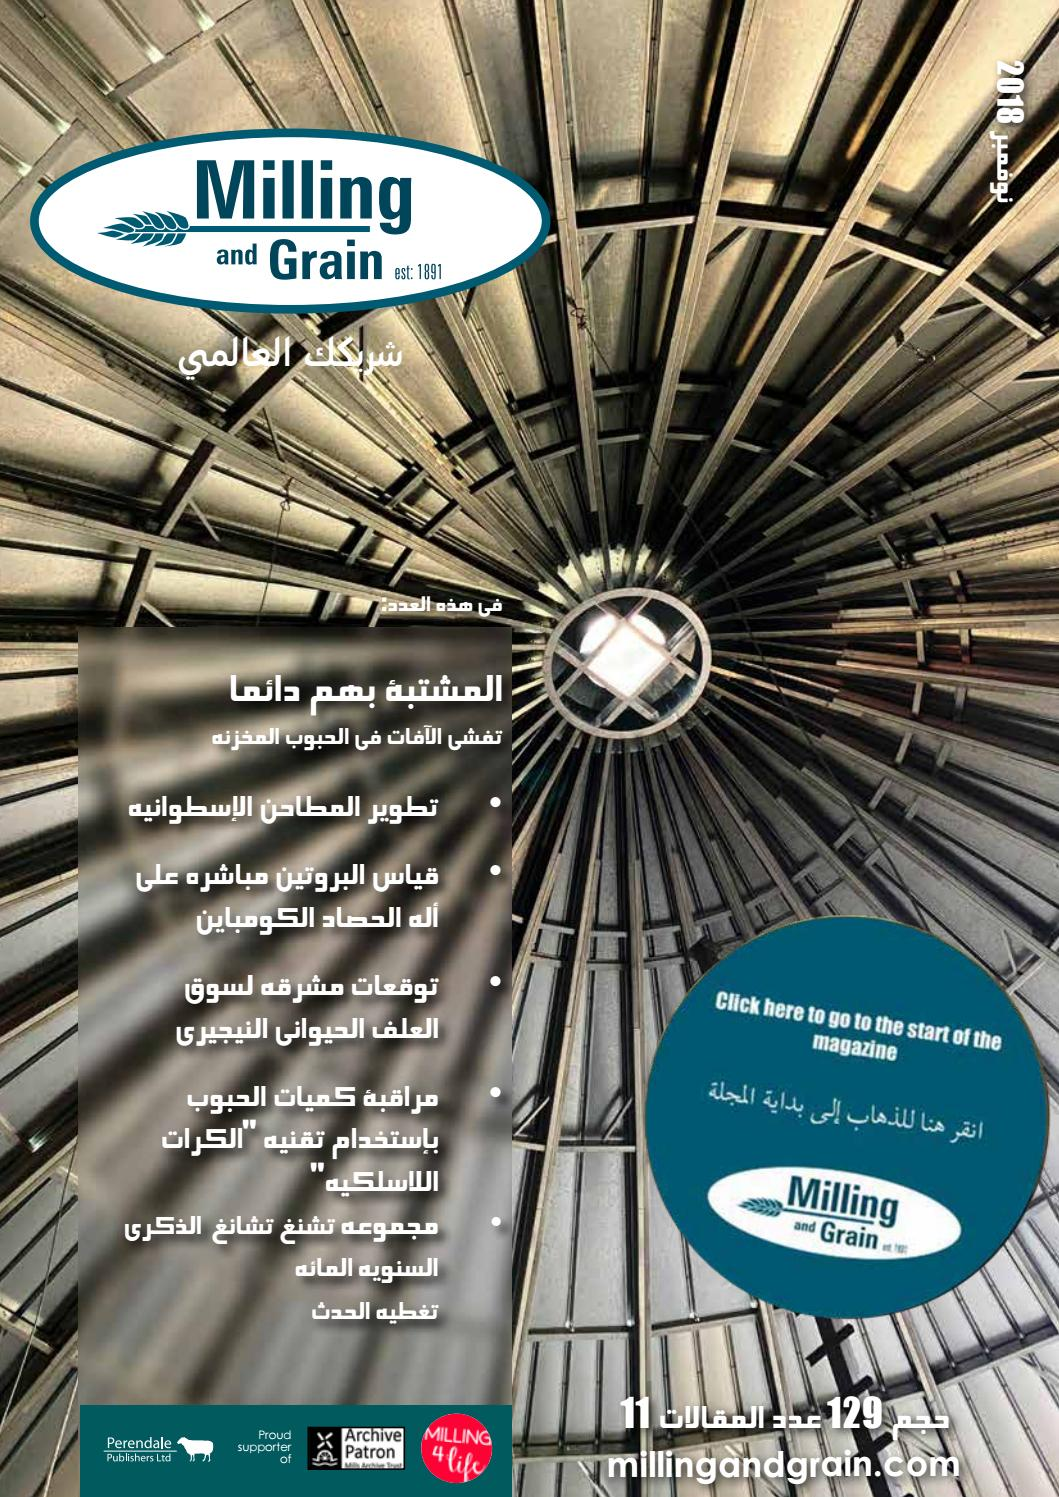 e1e3d0bd02b73 ARABIC LANGUAGE EDITION - Milling and Grain - Issue 6 - 2018 by Perendale  Publishers - issuu